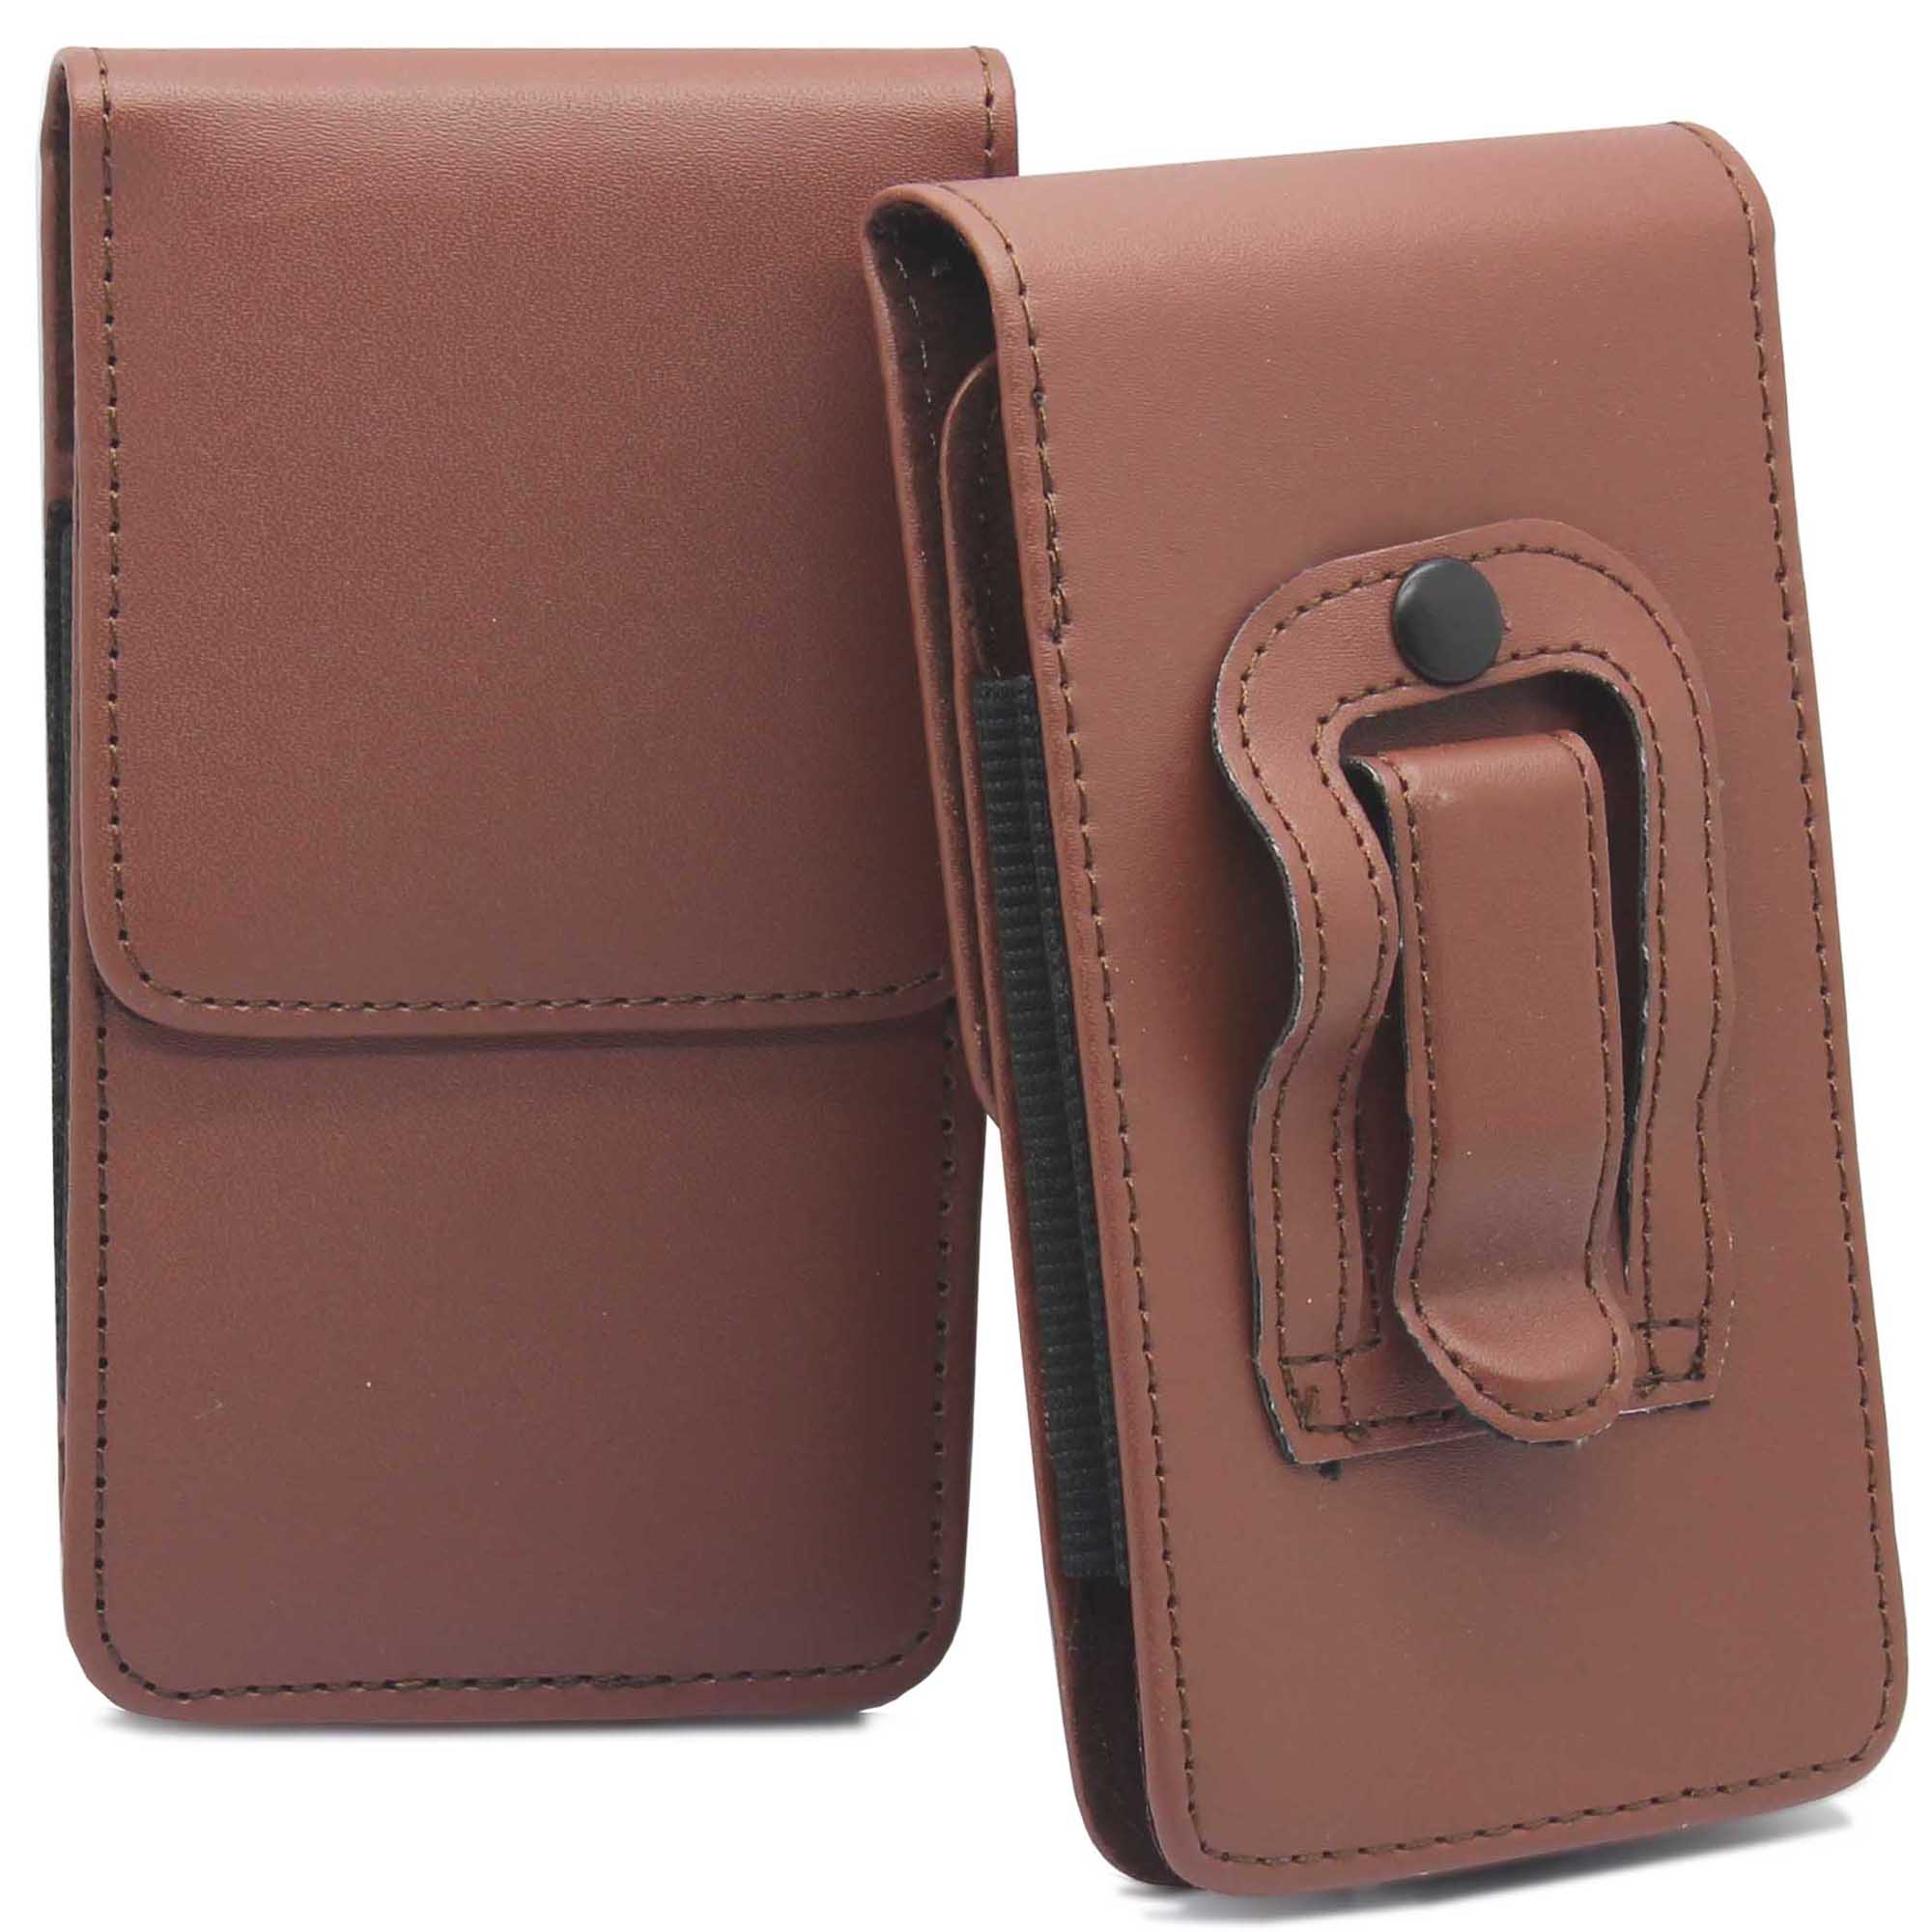 universal vertical leather belt pouch holster clip loop